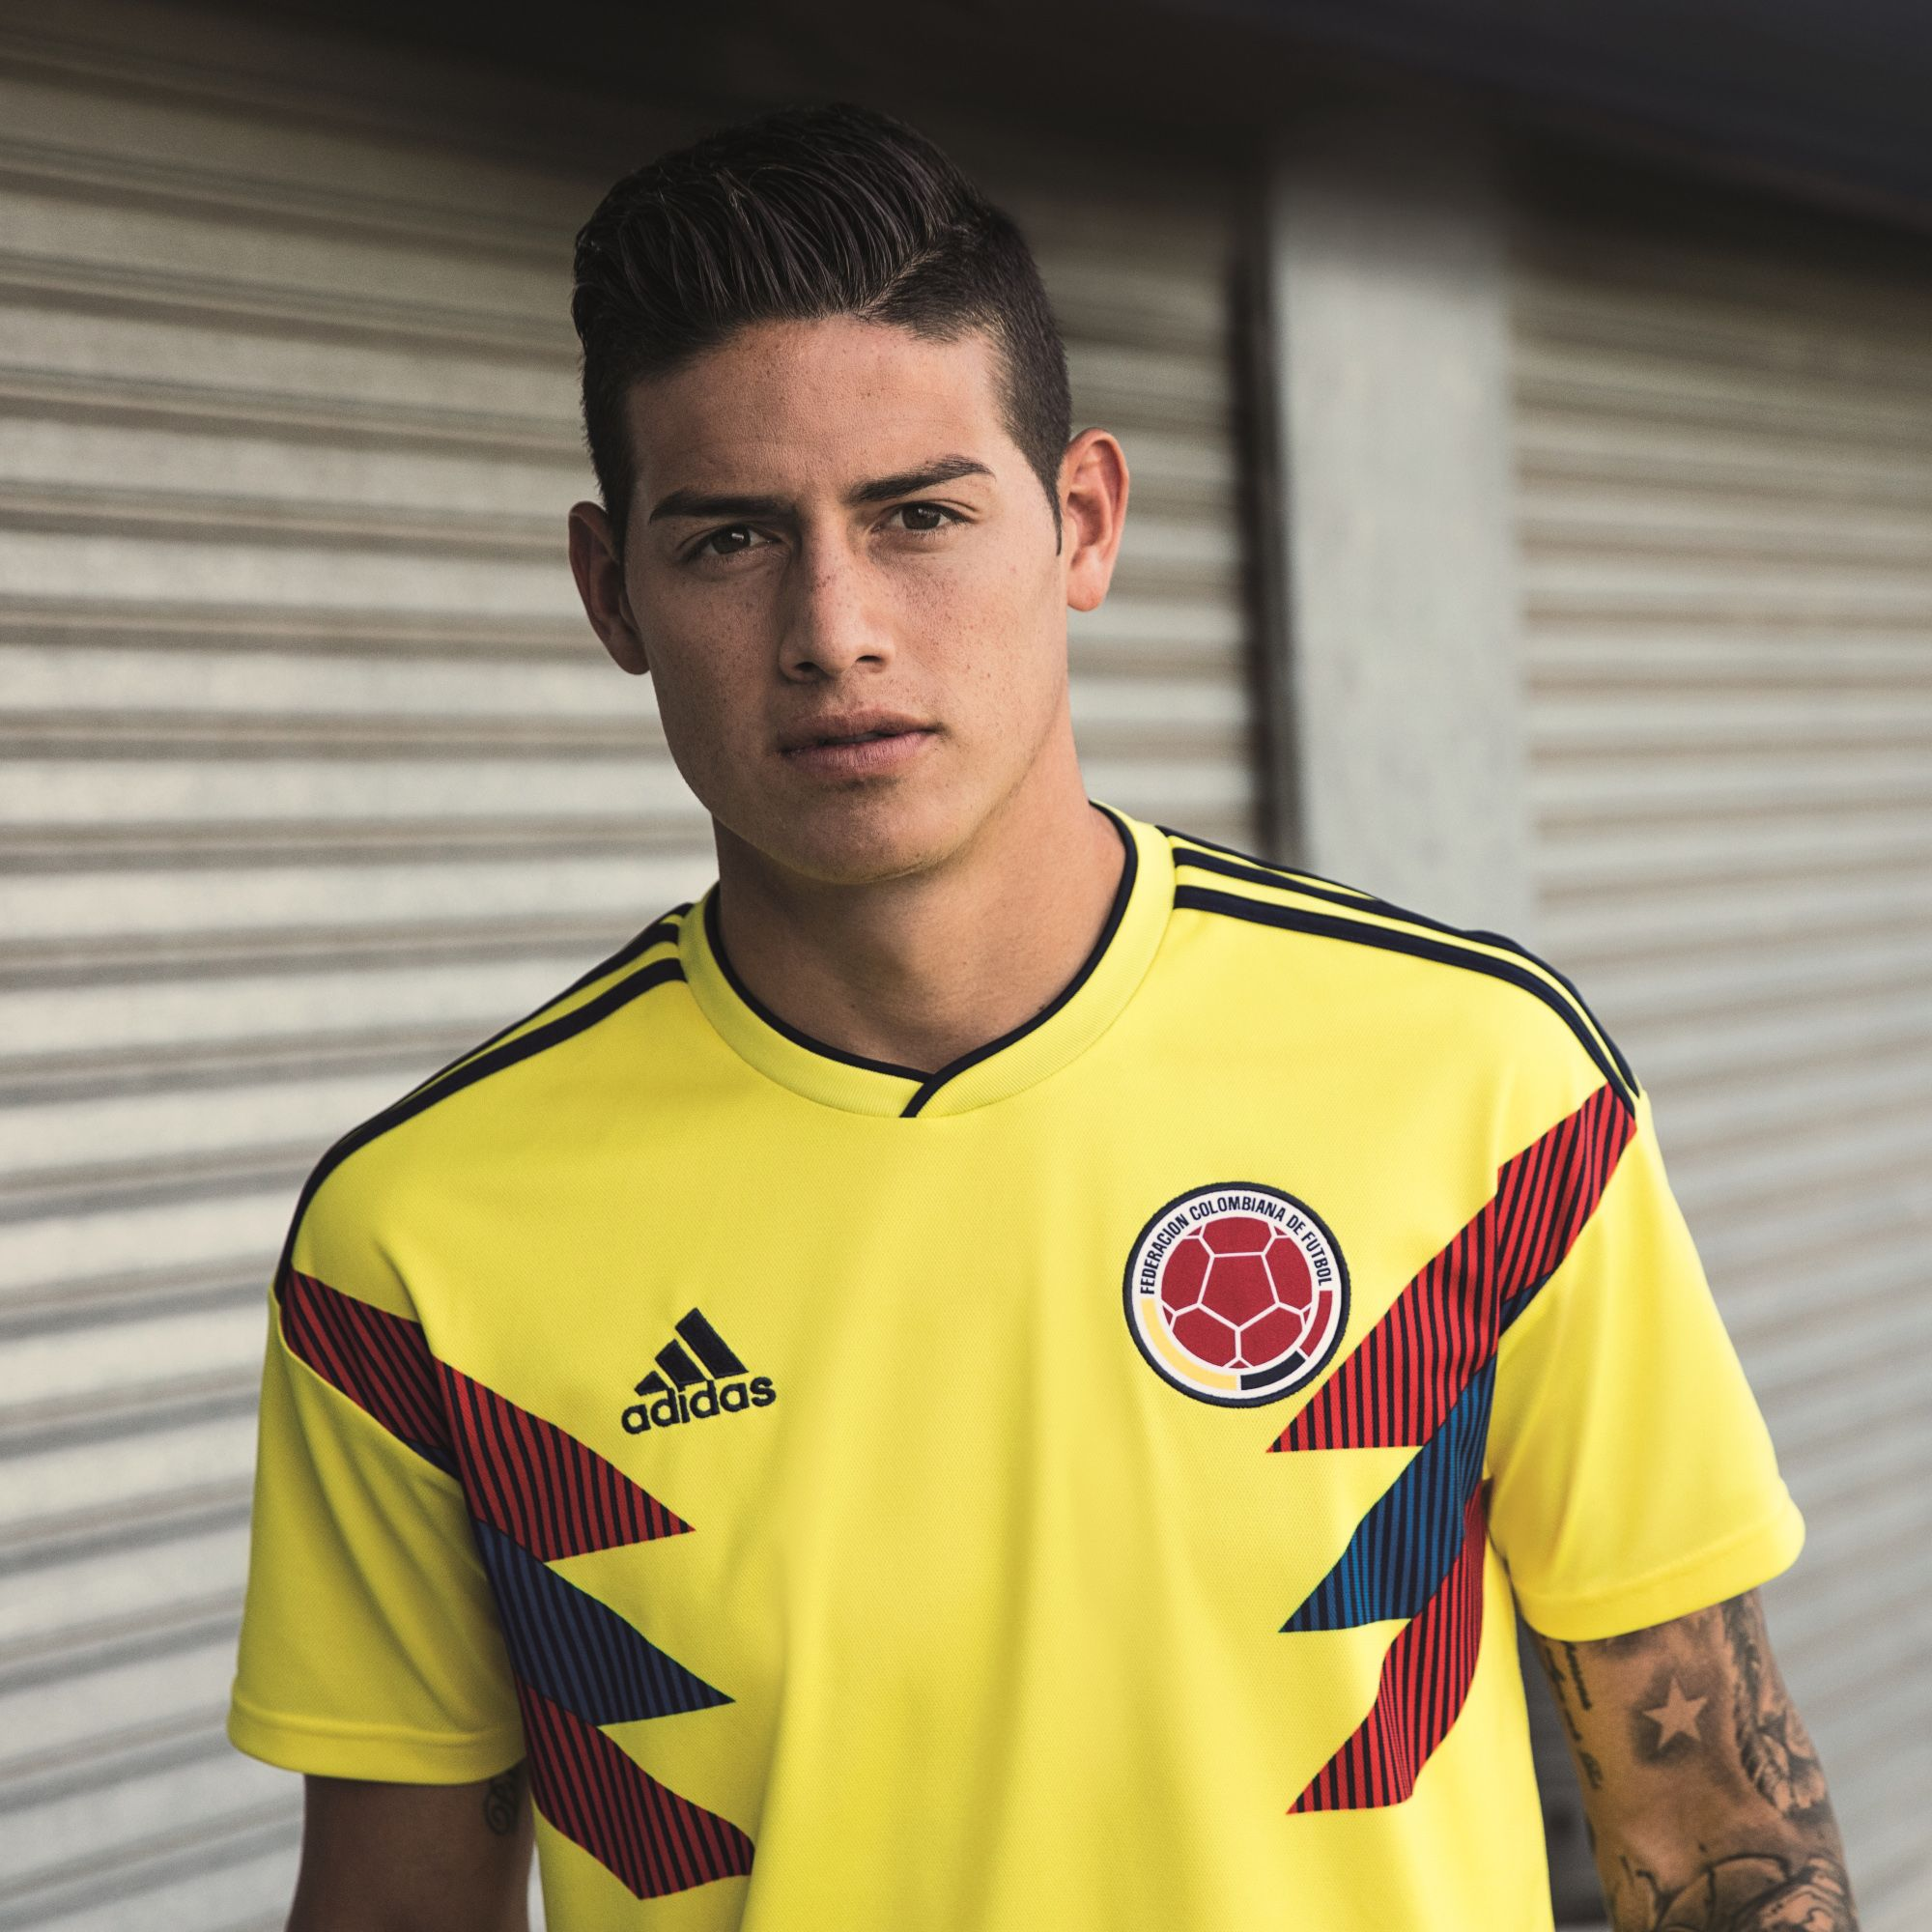 release date 6d341 2787b James Rodriguez in the adidas 2018 Colombia home jersey ...